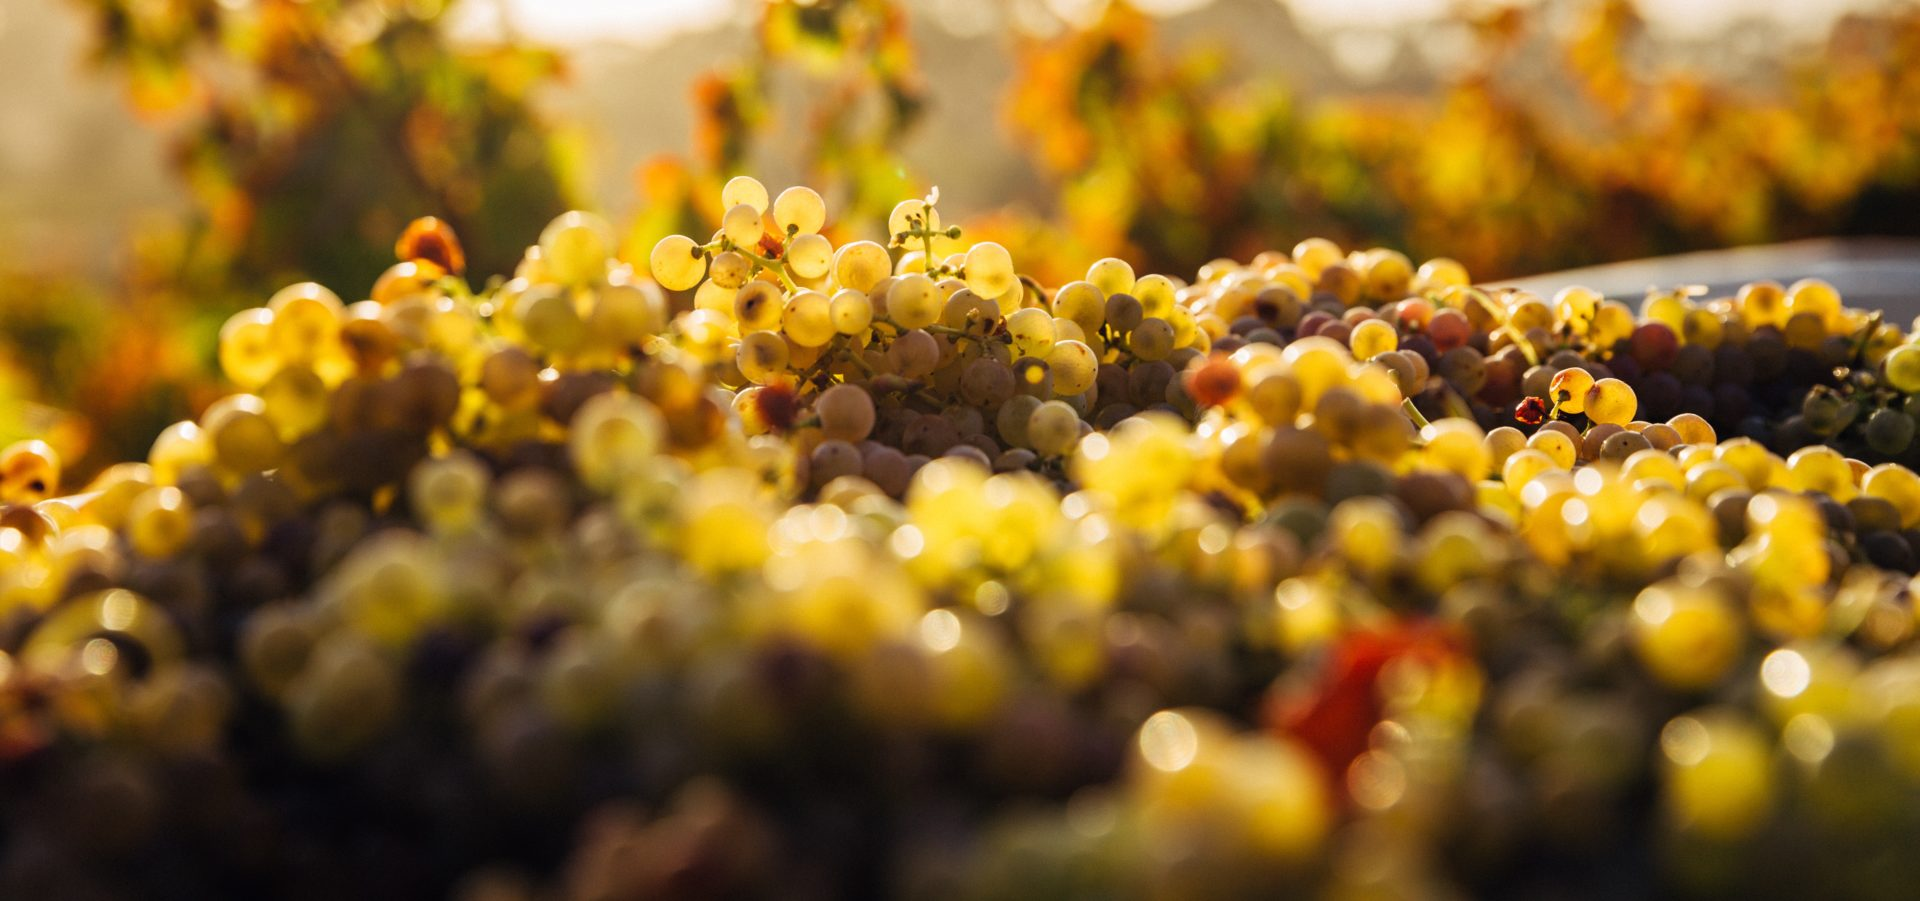 Arnoa Vuelta – Basque wine road